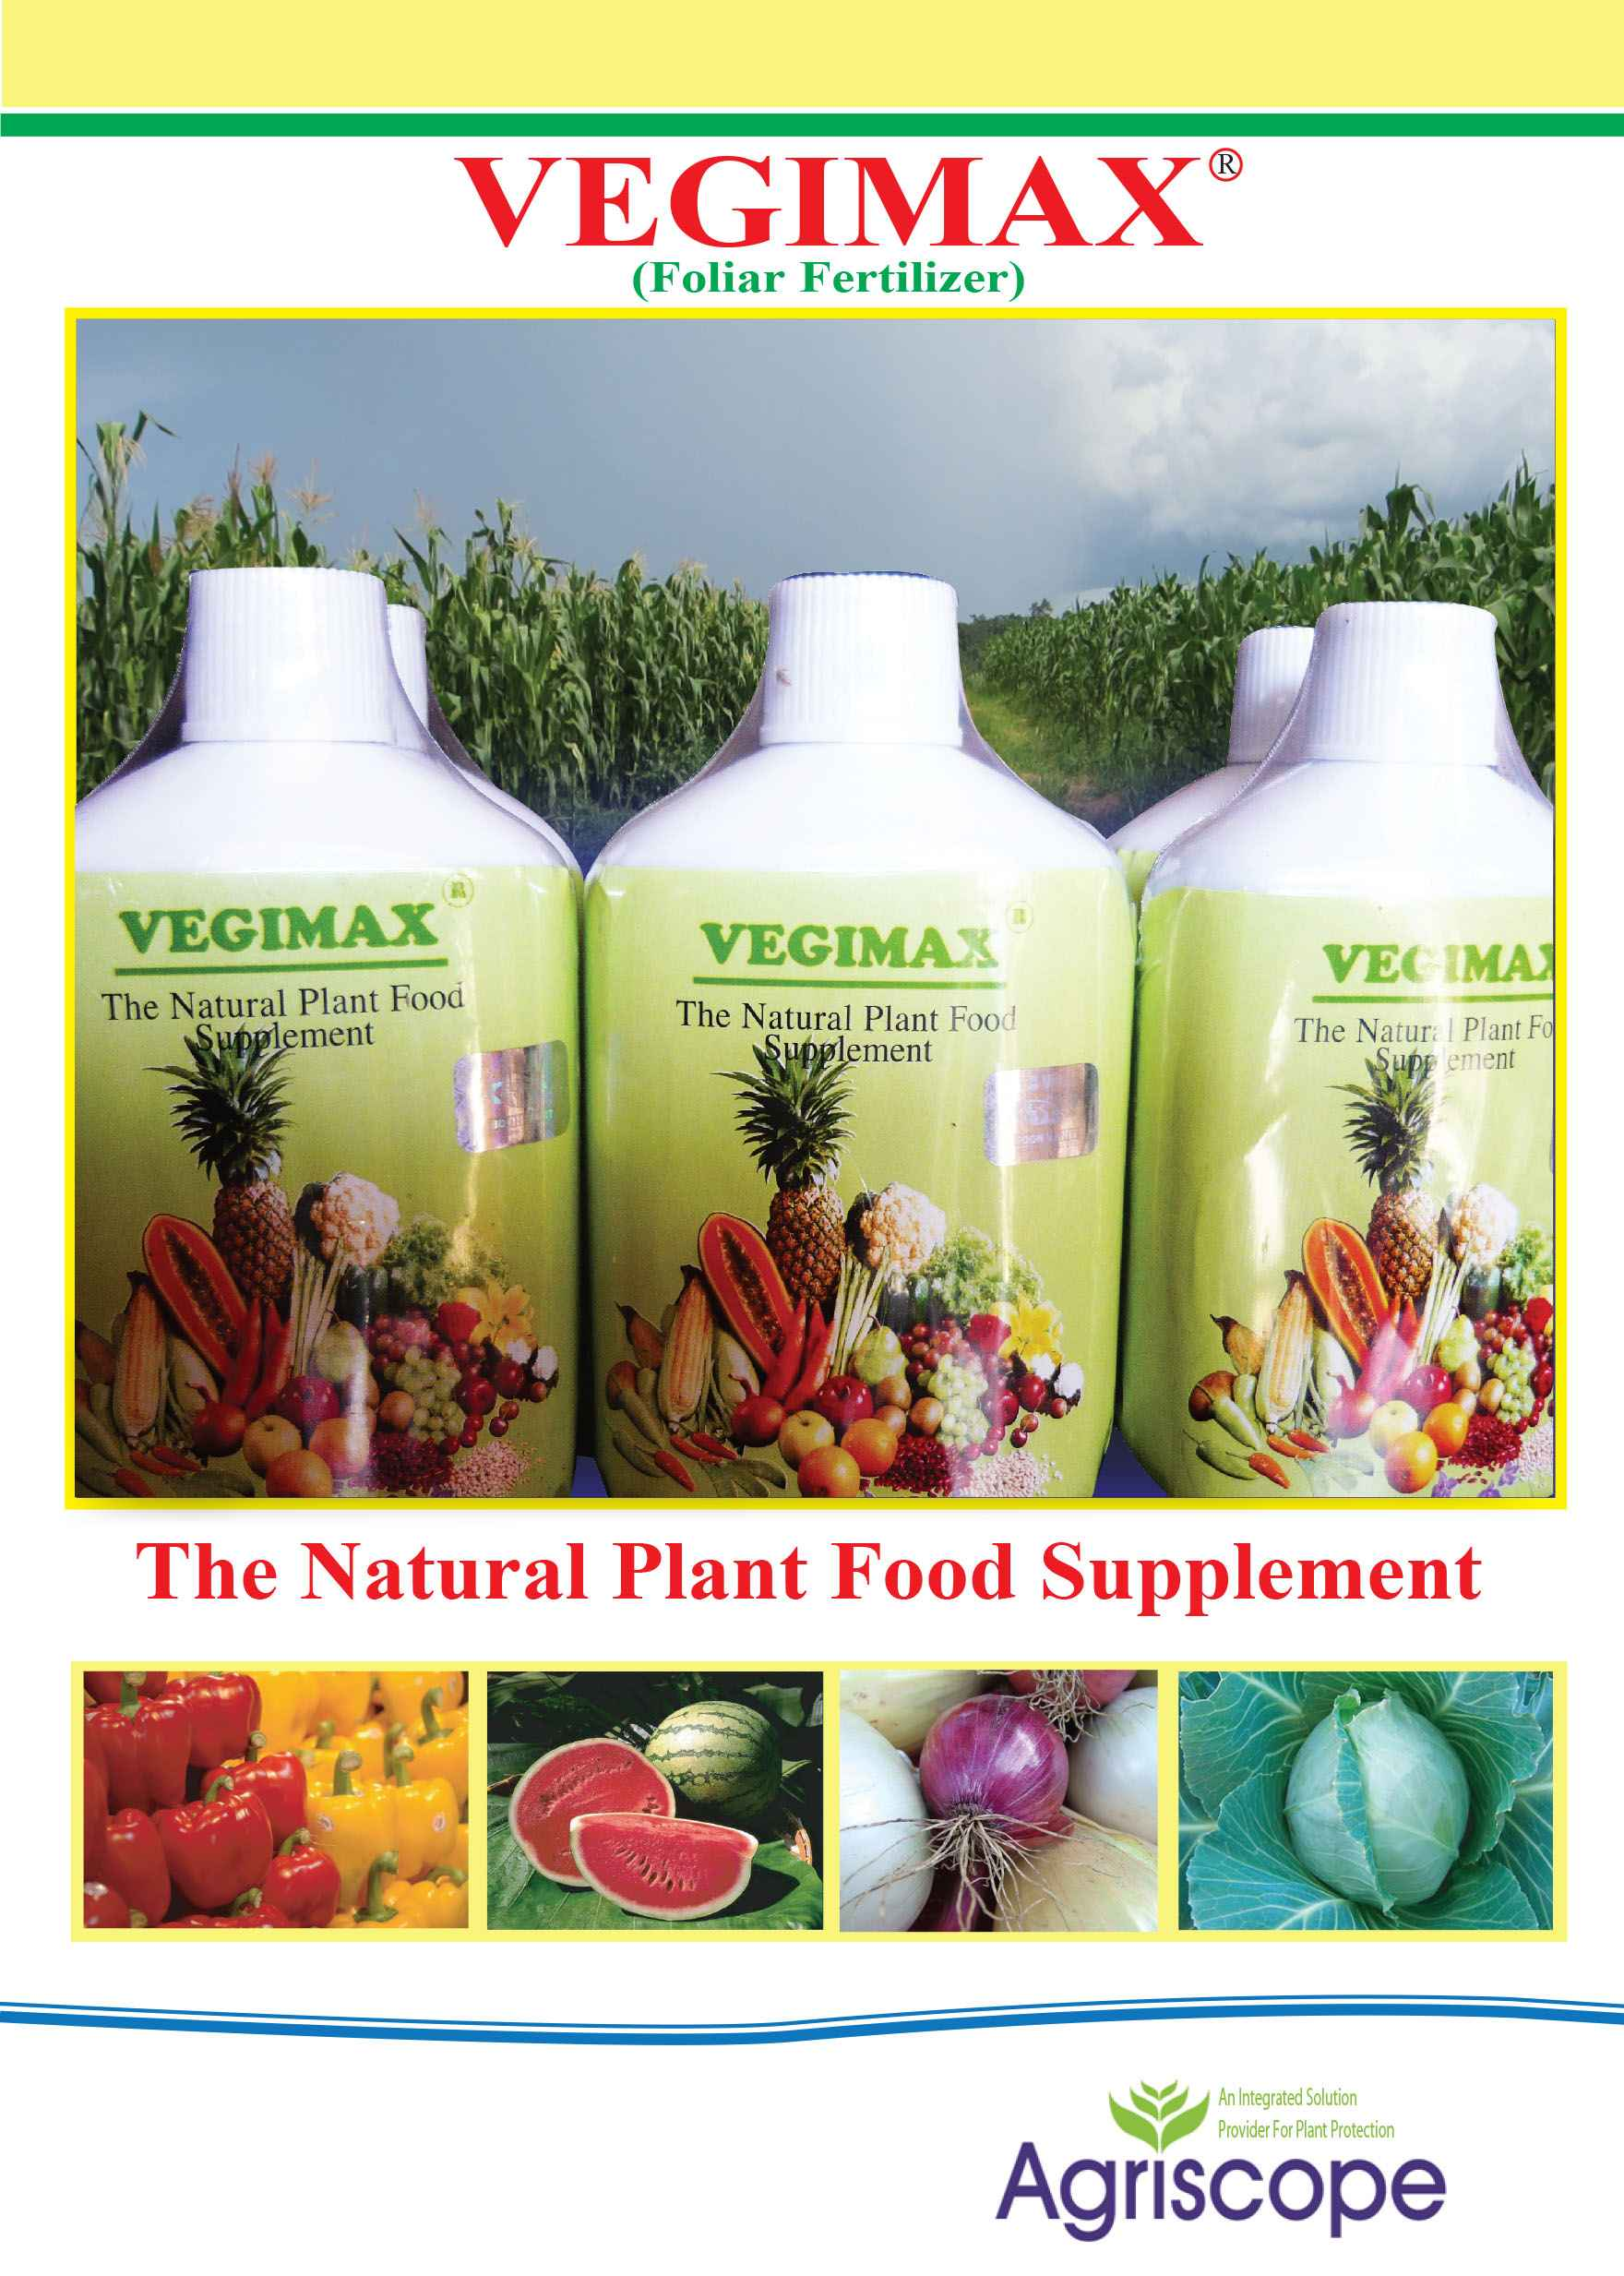 VEGIMAX fertilizer (250ml)